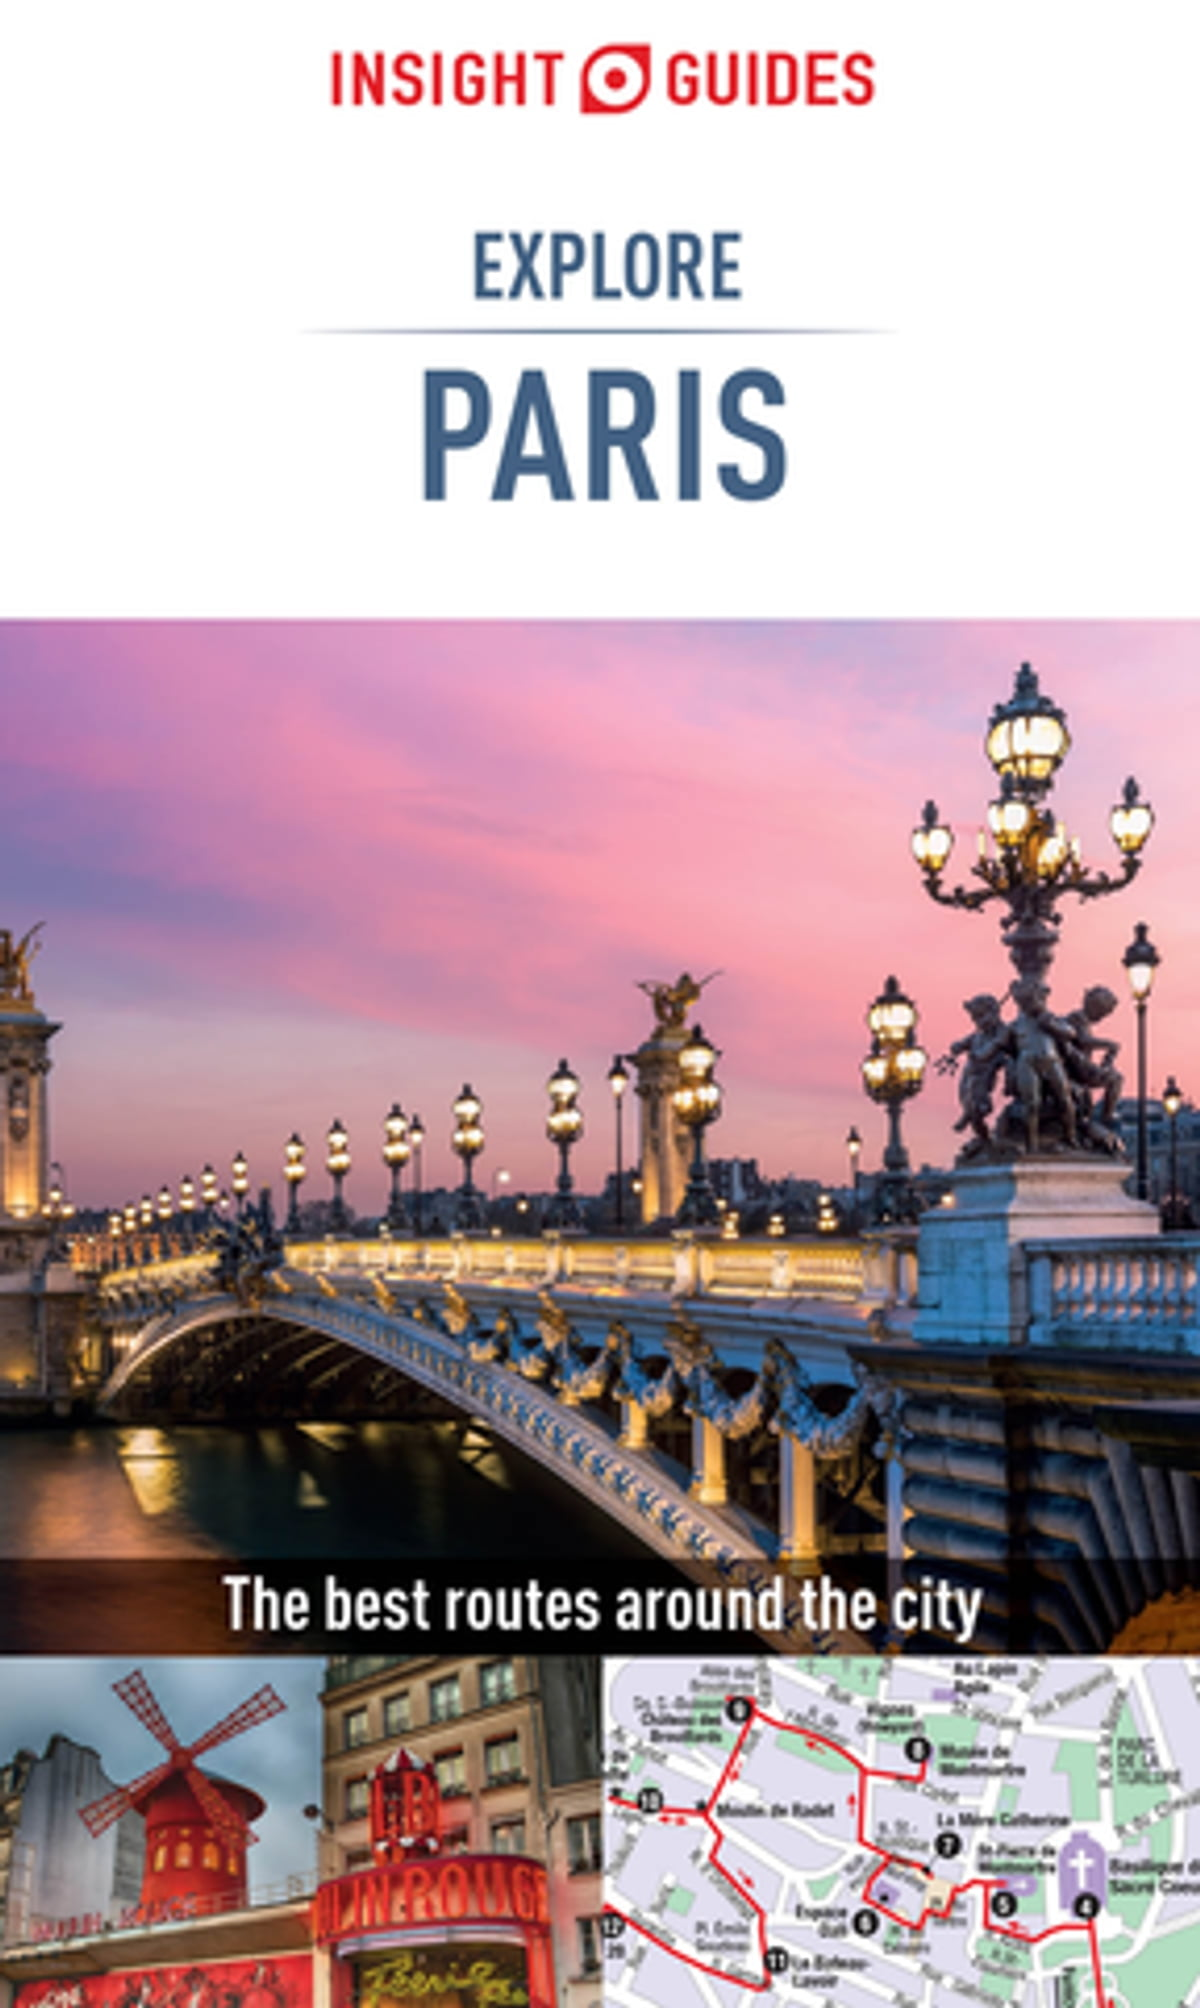 Insight Guides: Explore Paris eBook by Insight Guides - 9781786716590 |  Rakuten Kobo